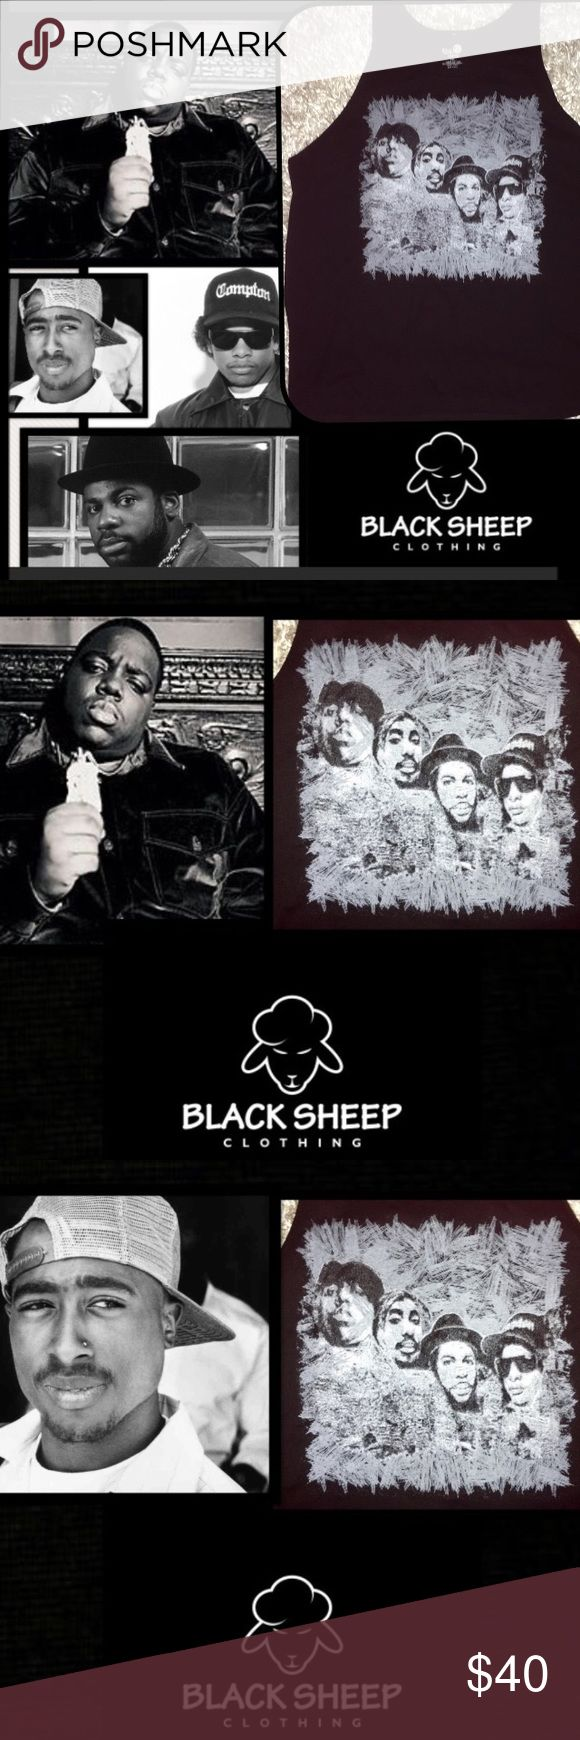 Black Sheep•Biggie Smalls,2PacJamMasterJay,EazyE Gone but not forgotten for the influence& style each artist brought to Rap and Hip Hop Biggie Smalls •AKA The Notorious B.I.G.5/21/72 Brooklyn New York Died 3/9/97(age 24)Los Angeles California Tupac Shakur•AKA 2Pac 6/16/71East Harlem,NY,Died 9/13/96(age 25)Jam Master Jay of Run DMC•AKA Hip Hops Jam Master Funk 1/21/65 NYC,NYDied 10/30/02(age 37) Eazy E of N.W.A. 9/7/64 AKA•The God Father of Gangsta Rap Compton California Died 3/26/95 (age…